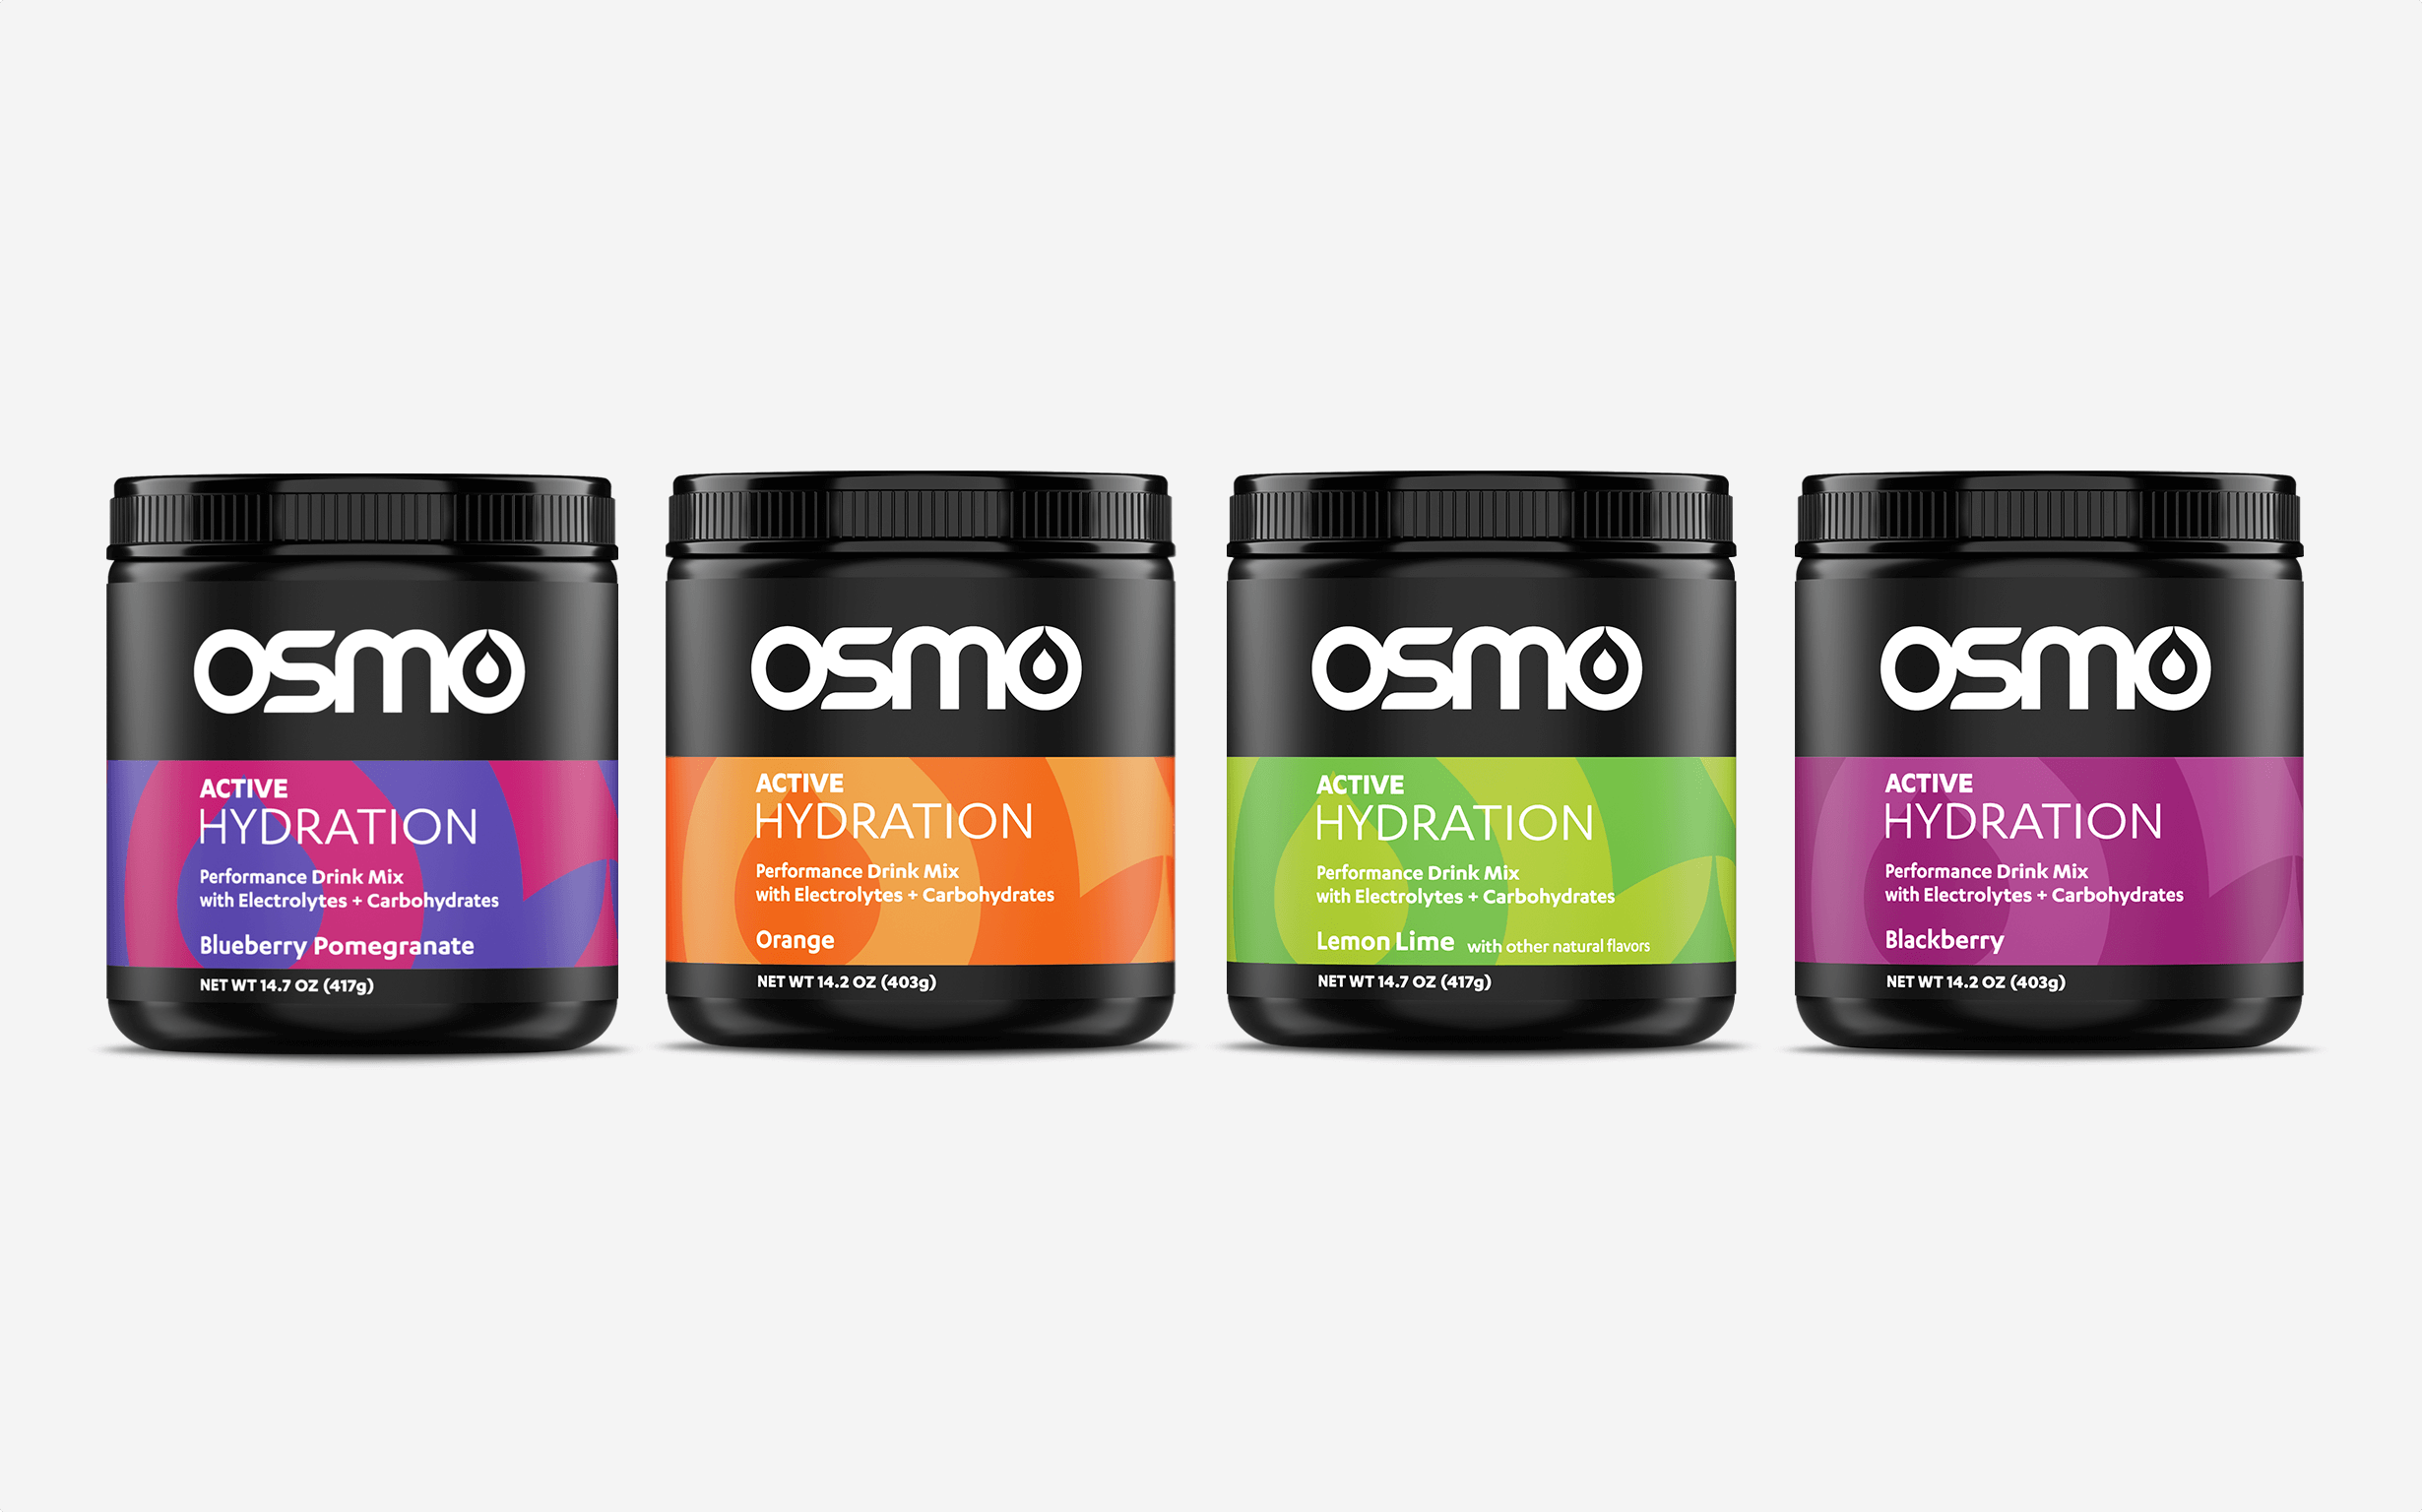 Four tubs of four flavors of Osmo's Active Hydration product show the packaging design.